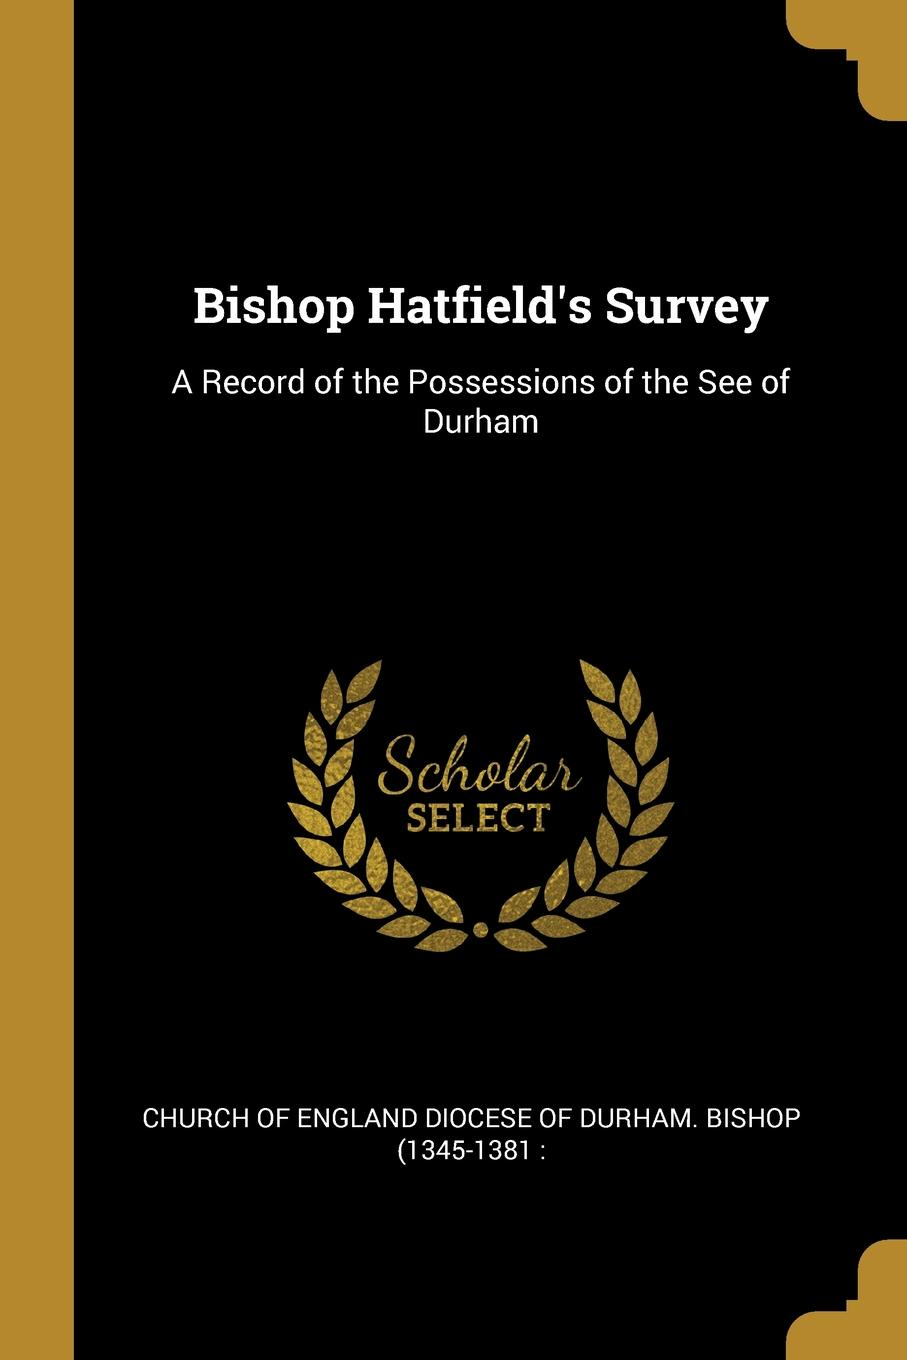 of England Diocese of Durham. Bishop (13 Bishop Hatfield.s Survey. A Record of the Possessions of the See of Durham church of england diocese of durham bishop 1345 1381 bishop hatfield s survey a record of the possessions of the see of durham made by order of thomas